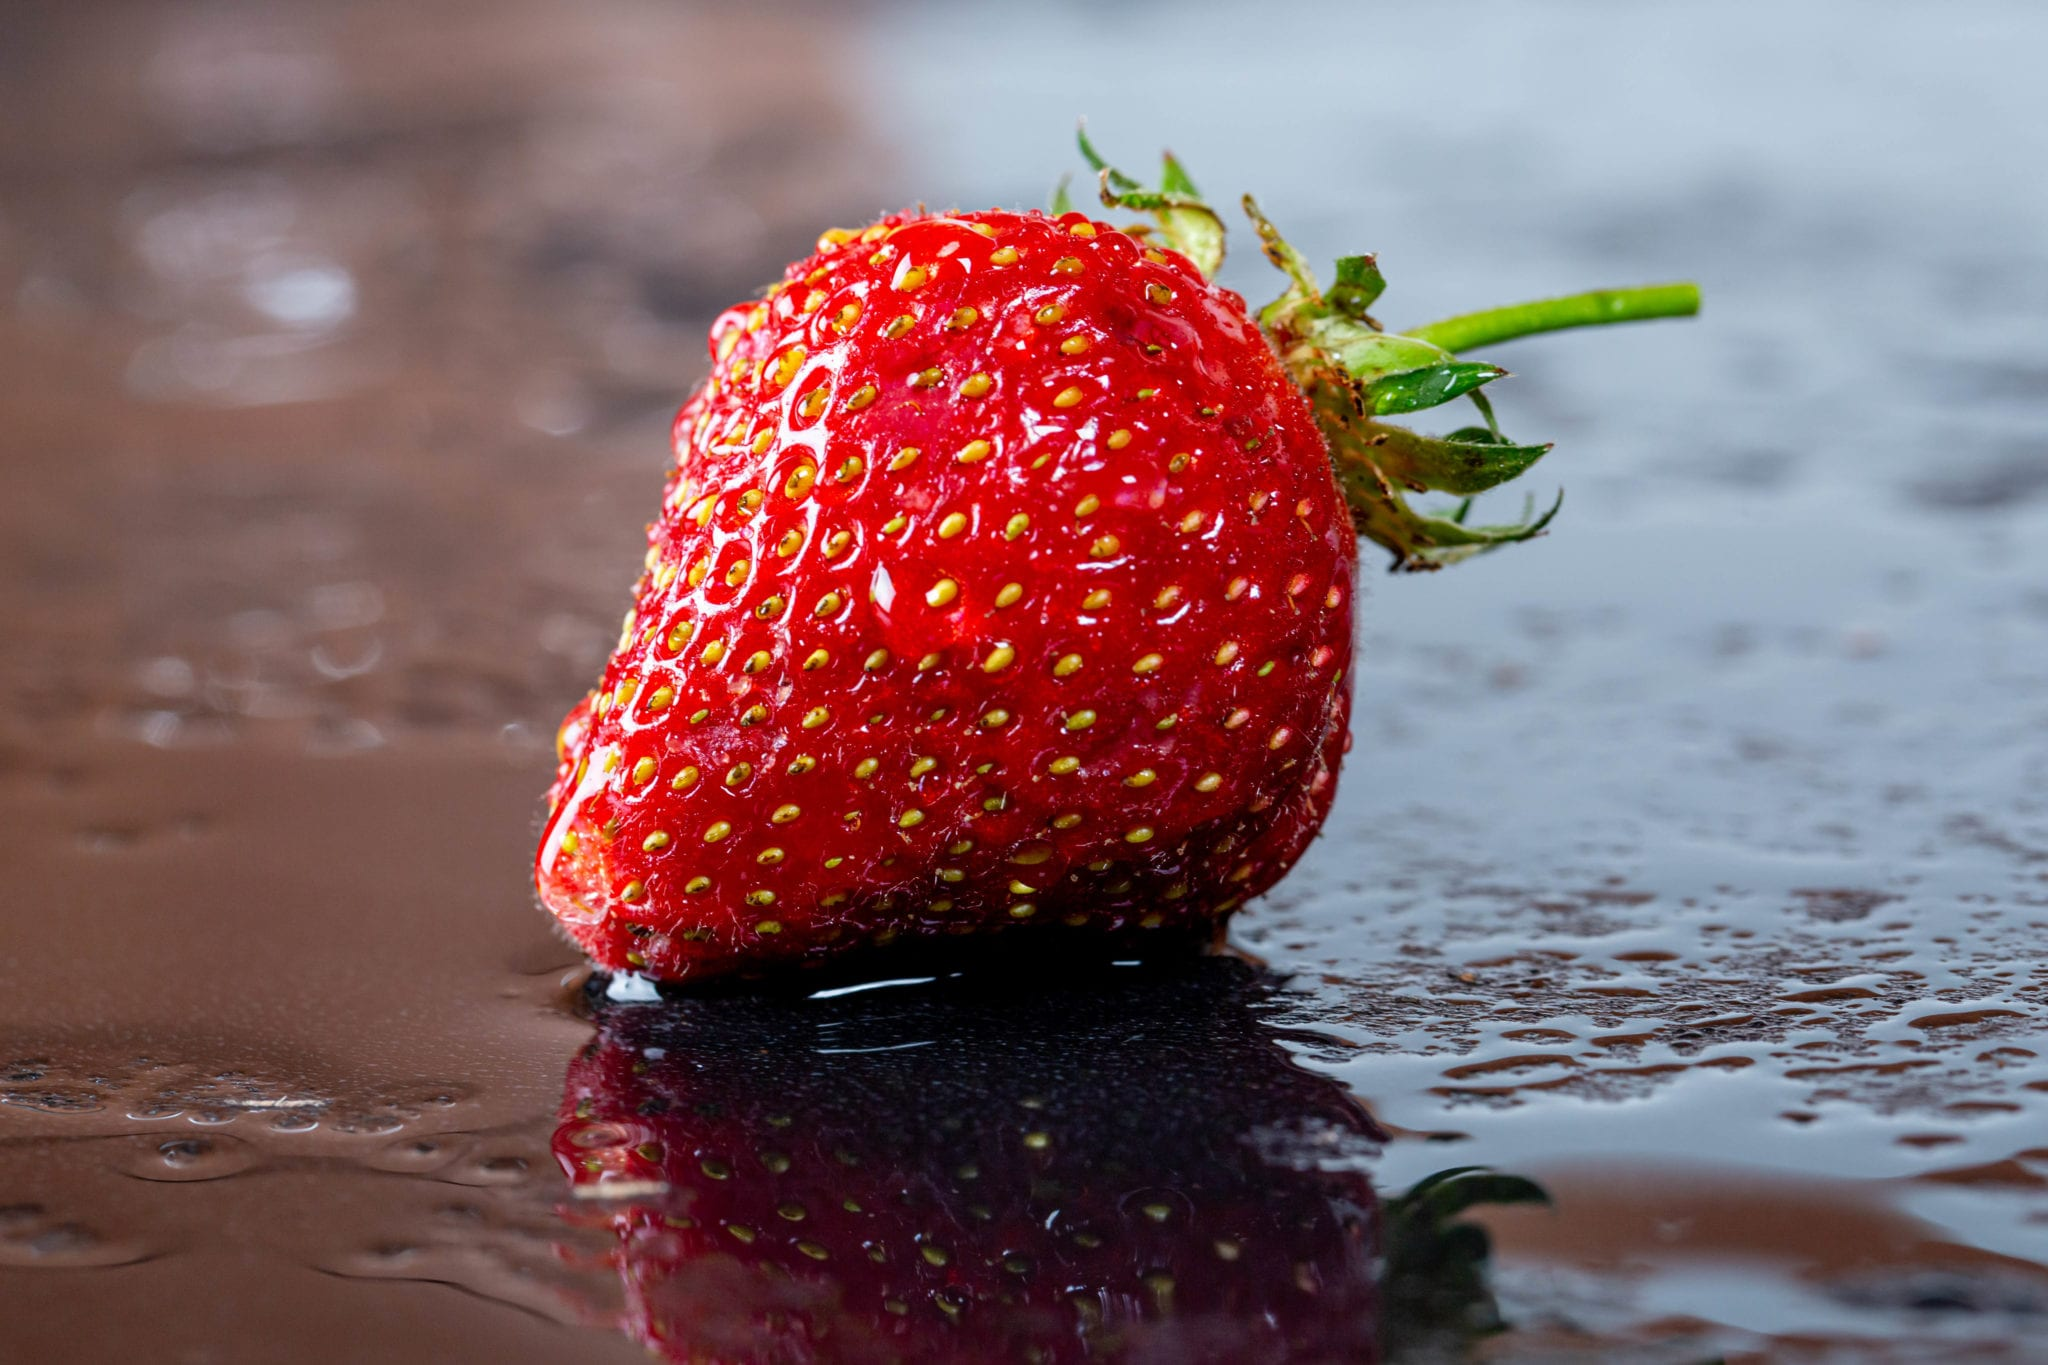 CBD oil on strawberries reduces mould, extends shelf life: study